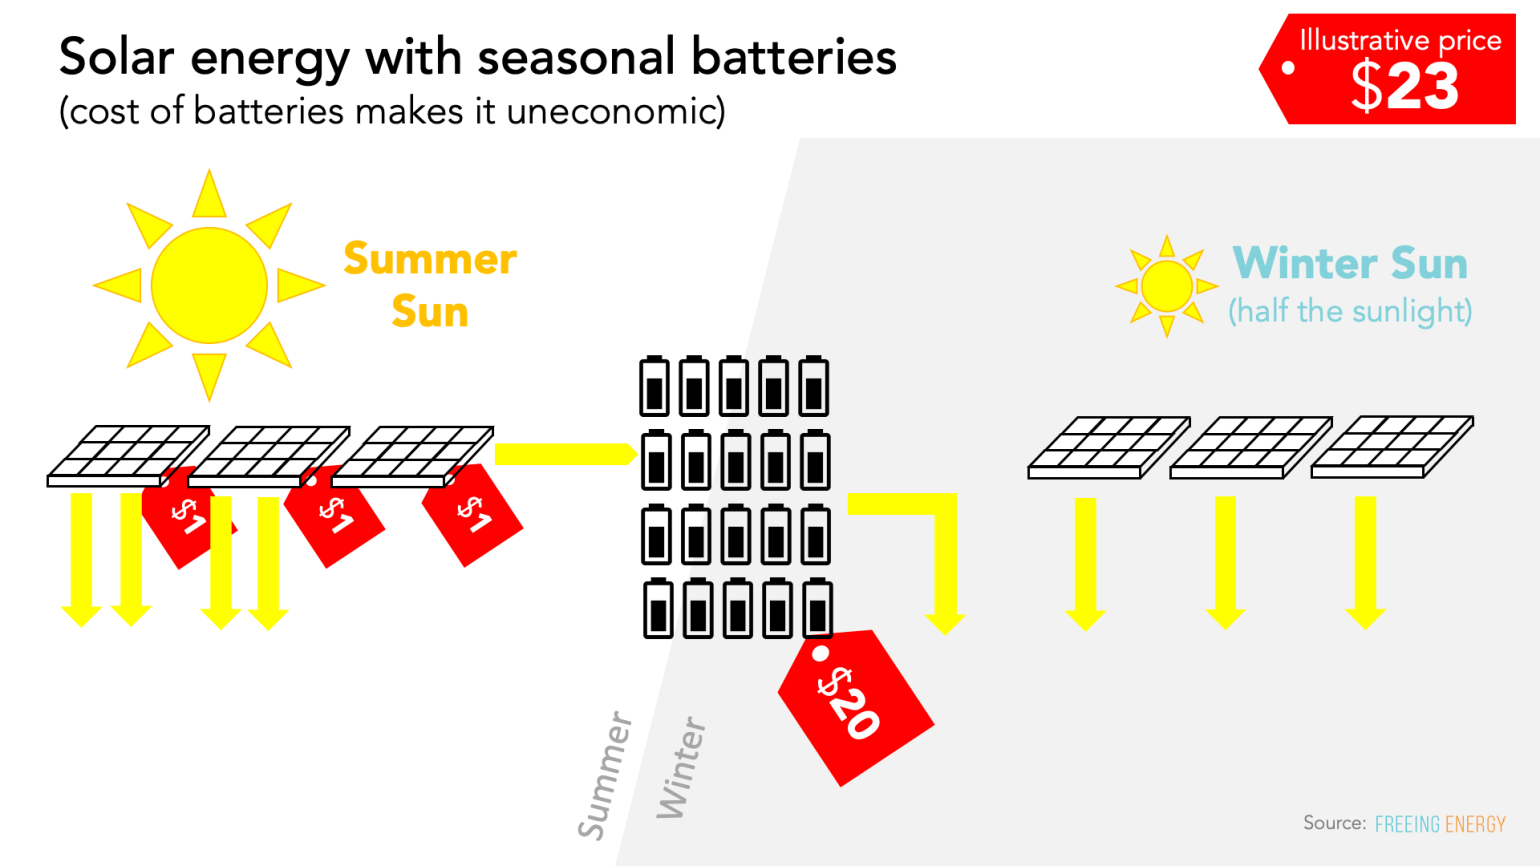 solar energy with seasonal batteries - this is a real clean energy grid but it's too expensive